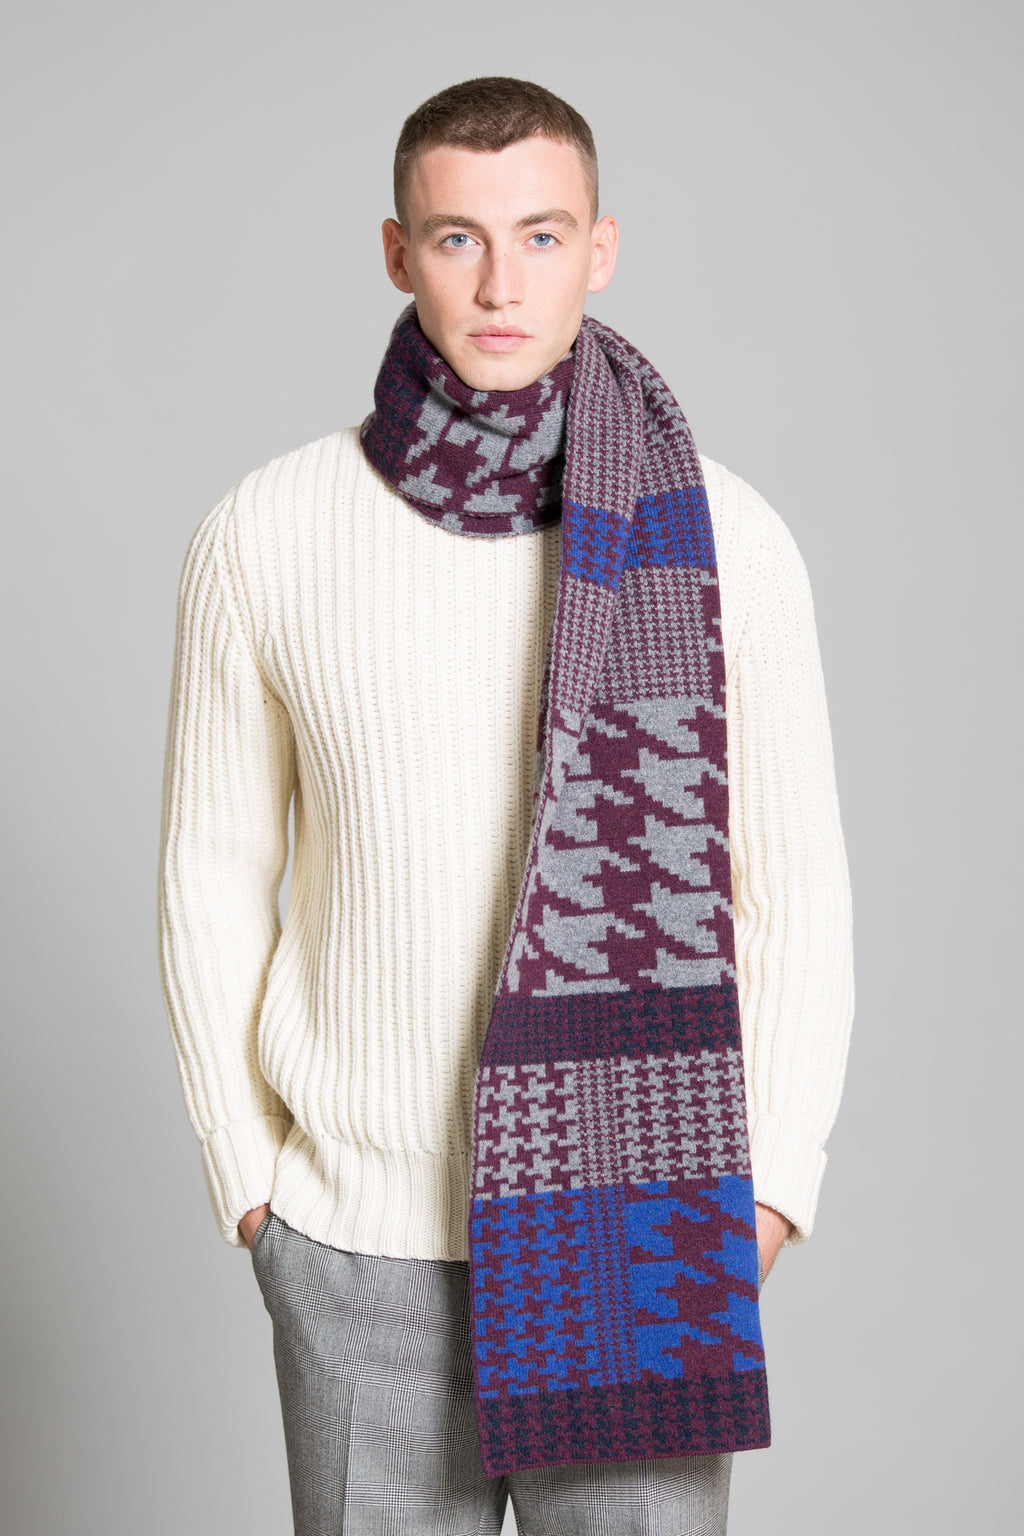 HOUNDSTOOTH BLANKET SCARF WINTER MIX - GREEN THOMAS